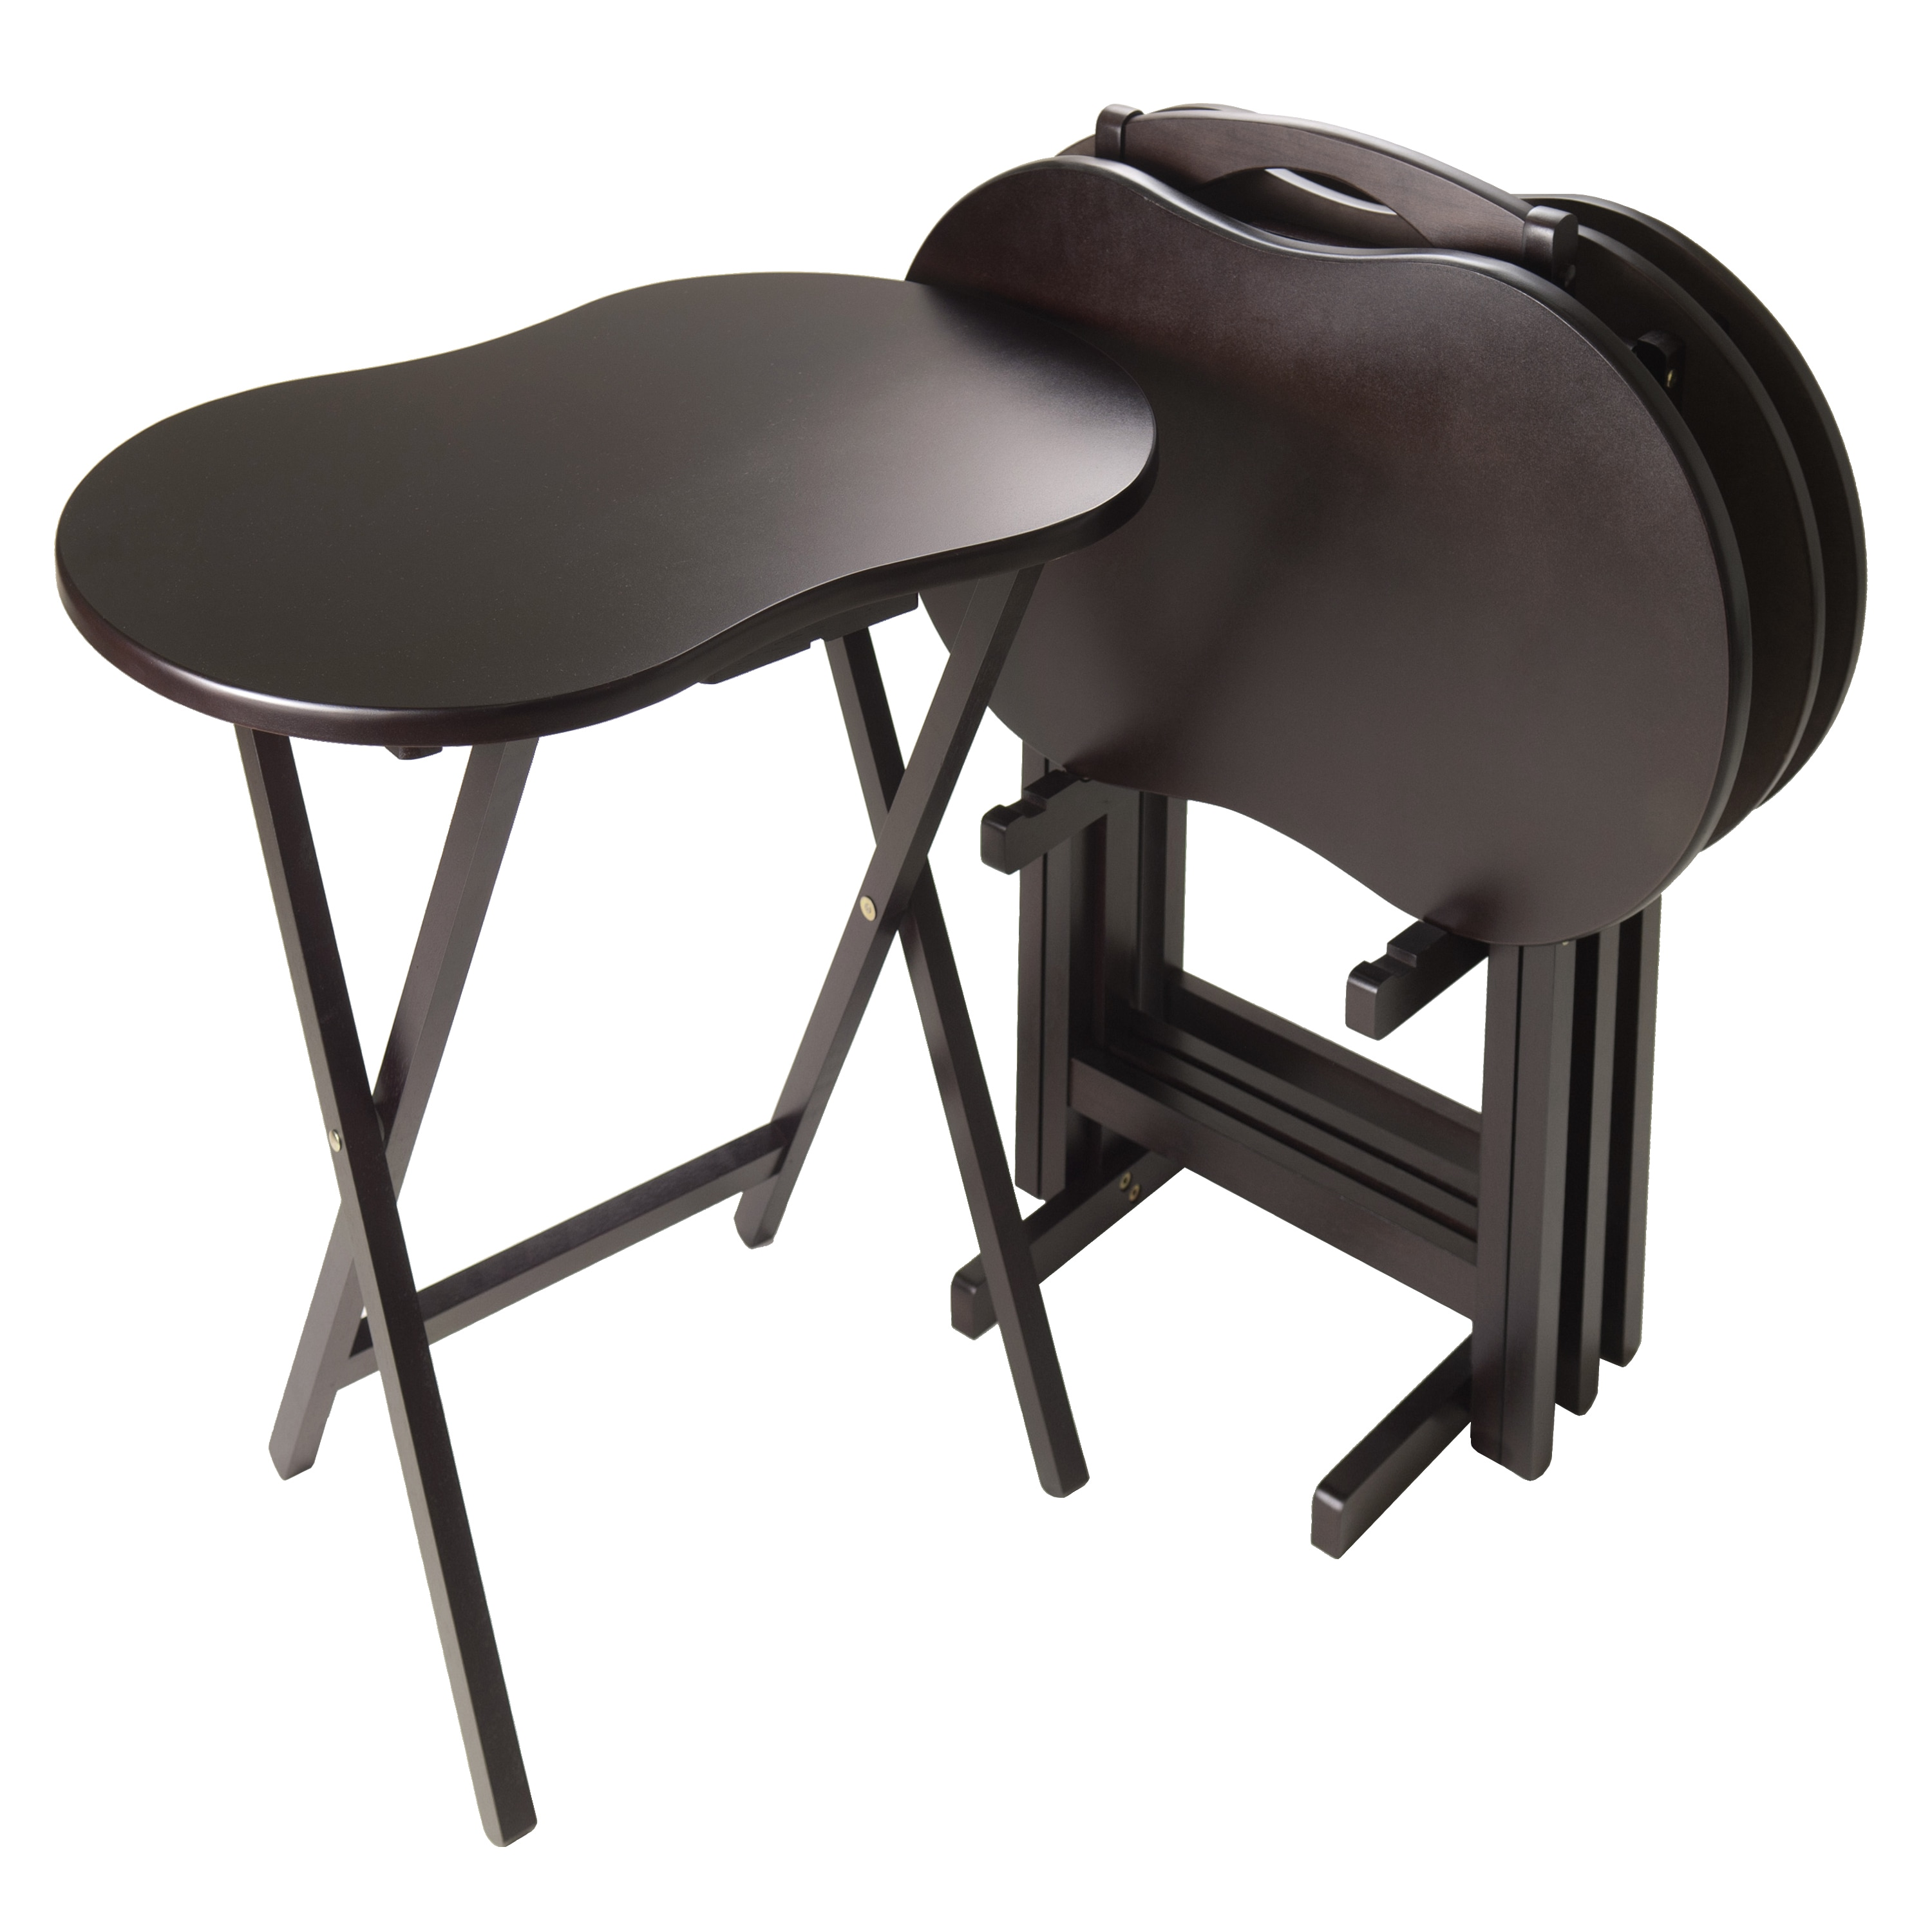 Transitional Snack Table Set Curved Top Base Legs Wooden Frame Black Finish  (5)